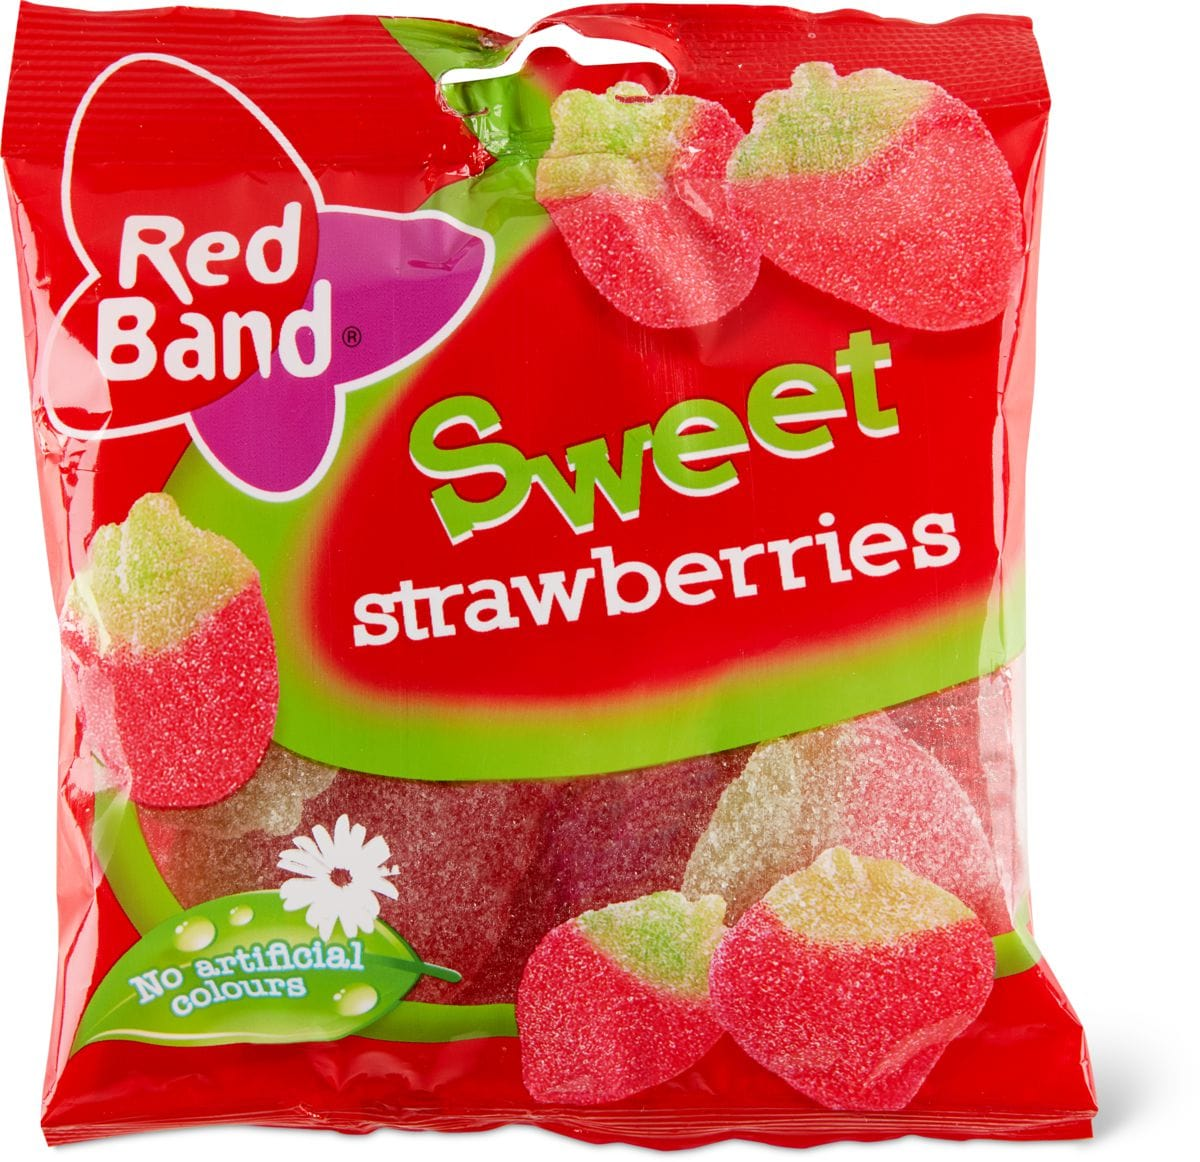 Red Band Sweet strawberries